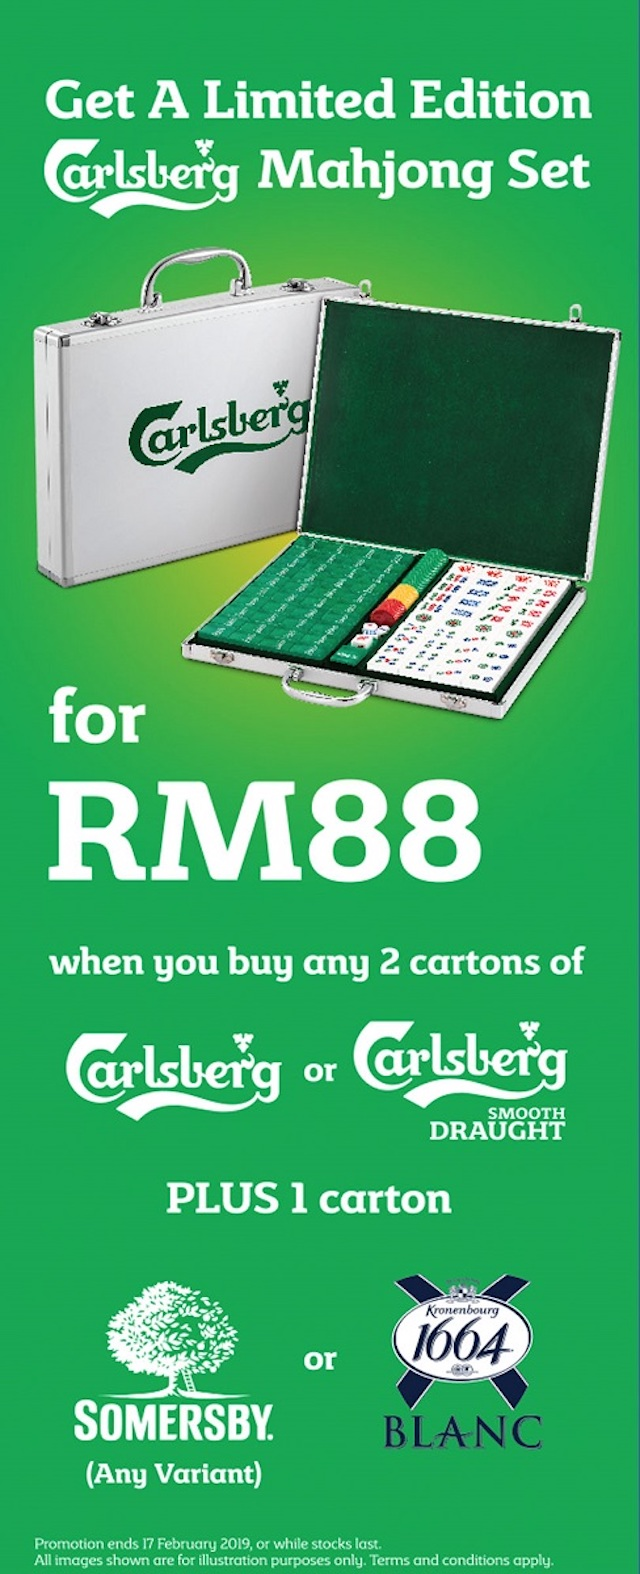 Get your hands on Probably The Best Limited Edition Mahjong Sets for only RM88 at participating supermarkets and hypermarkets!